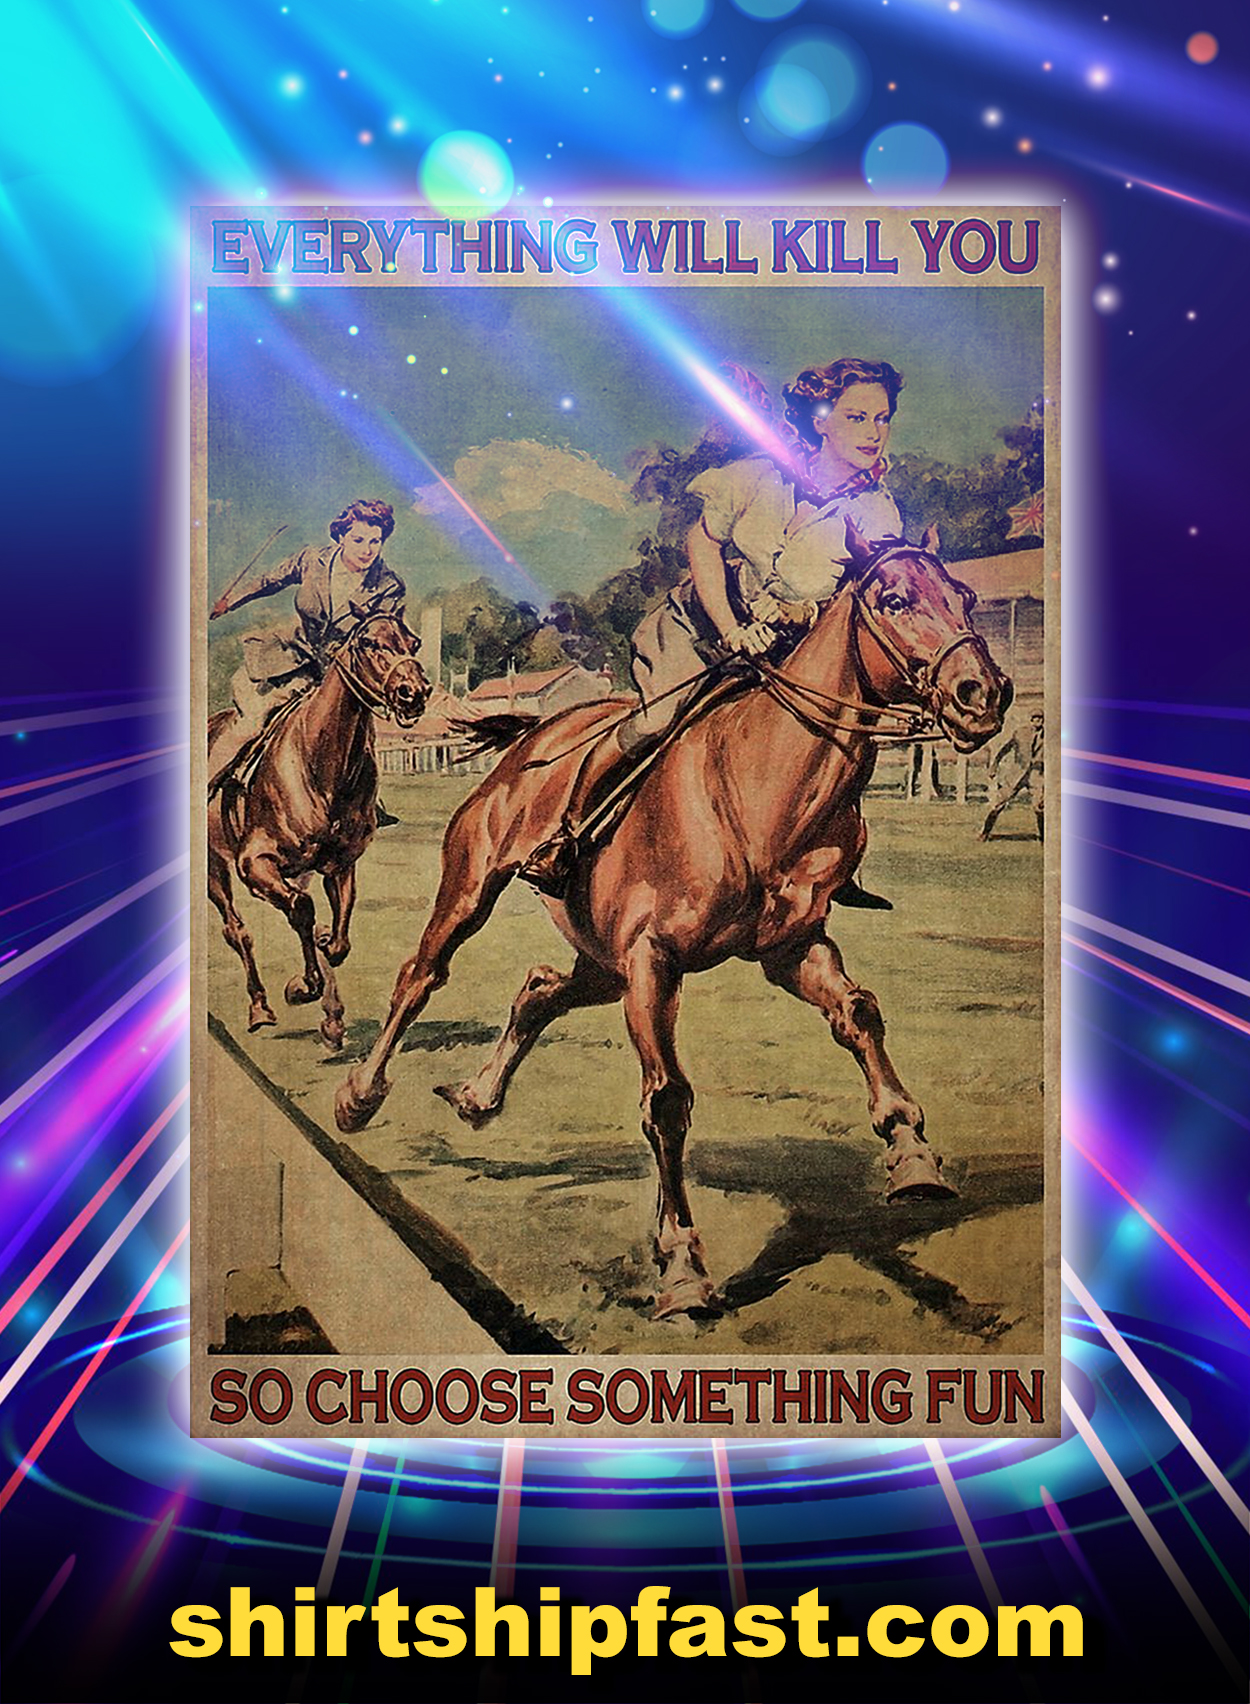 Female horse racing everything will kill you so choose something fun poster - A2